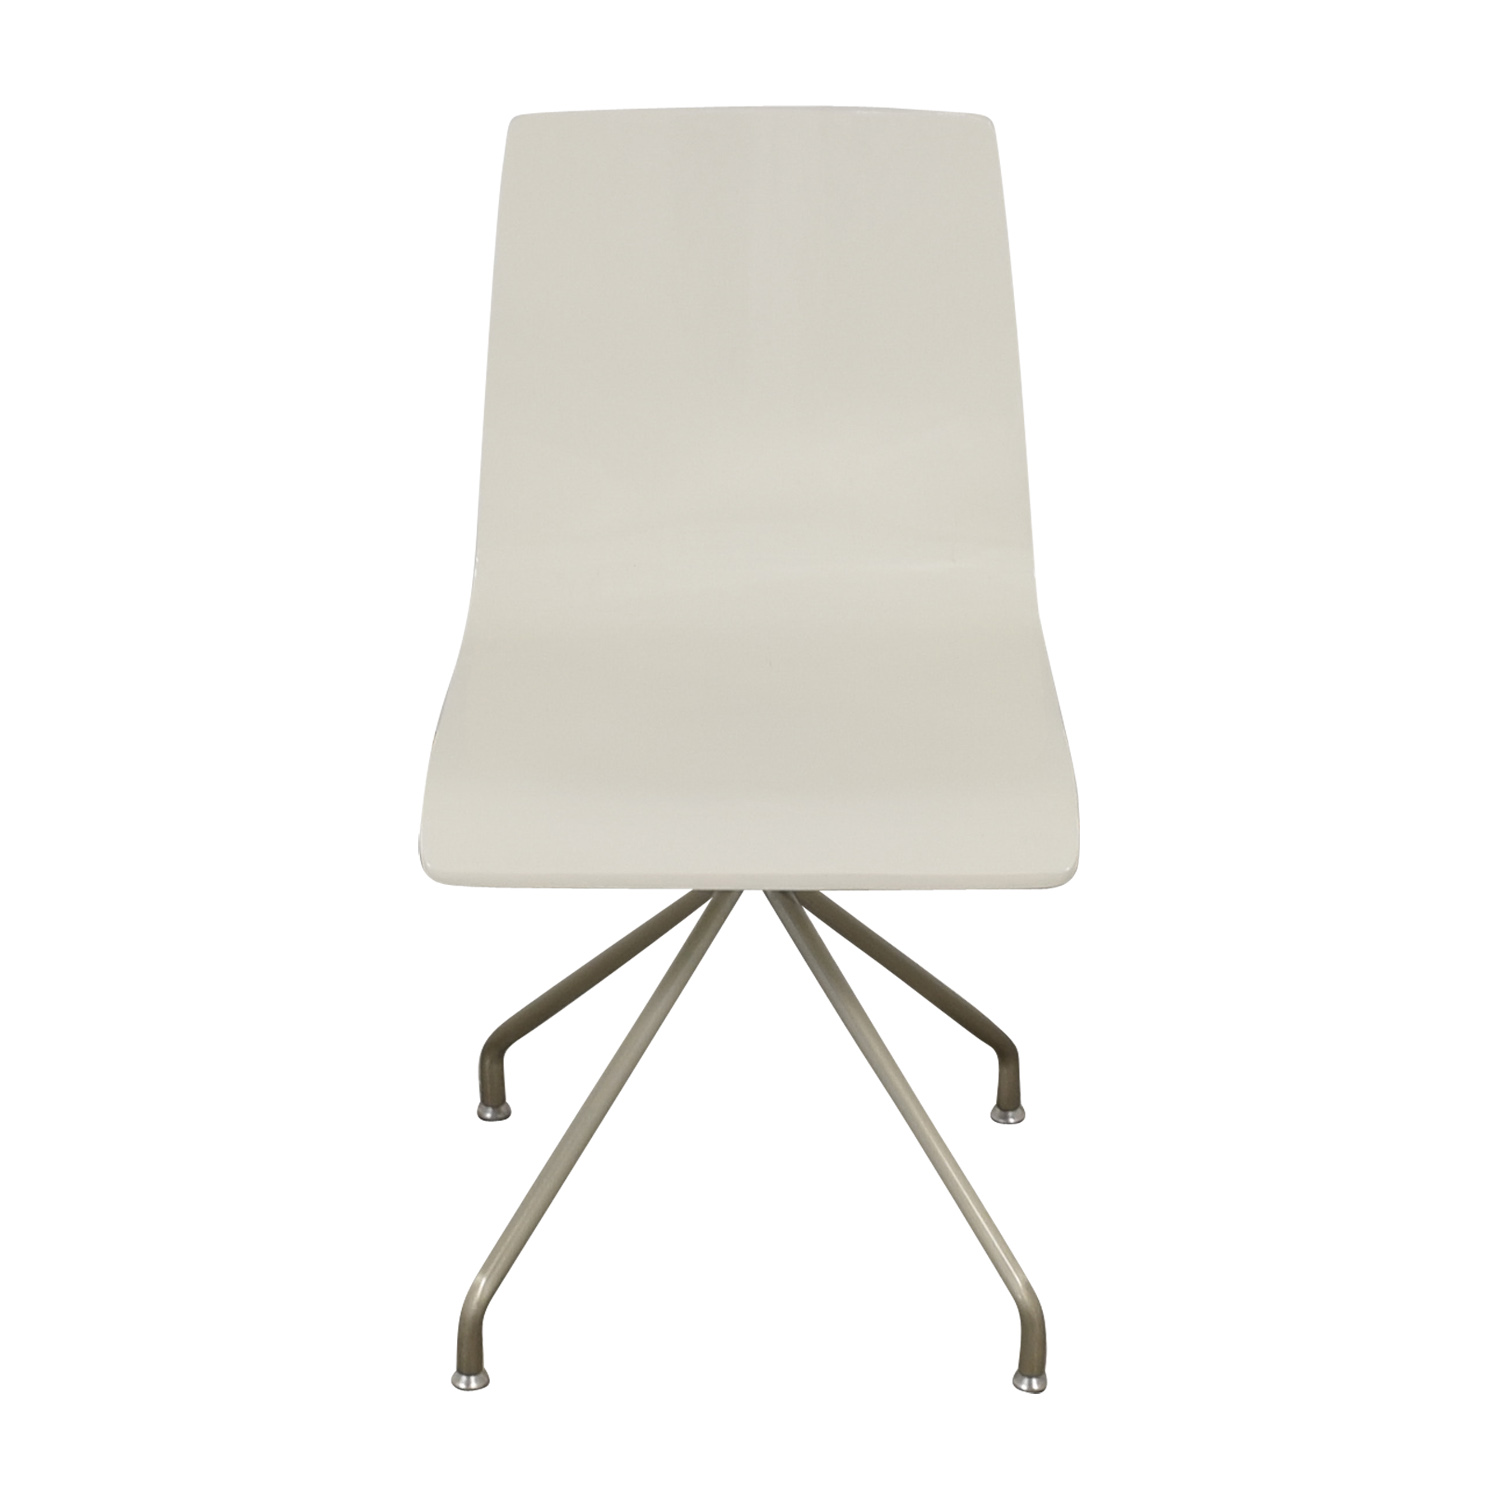 Crate & Barrel Crate & Barrel White Office Chair used